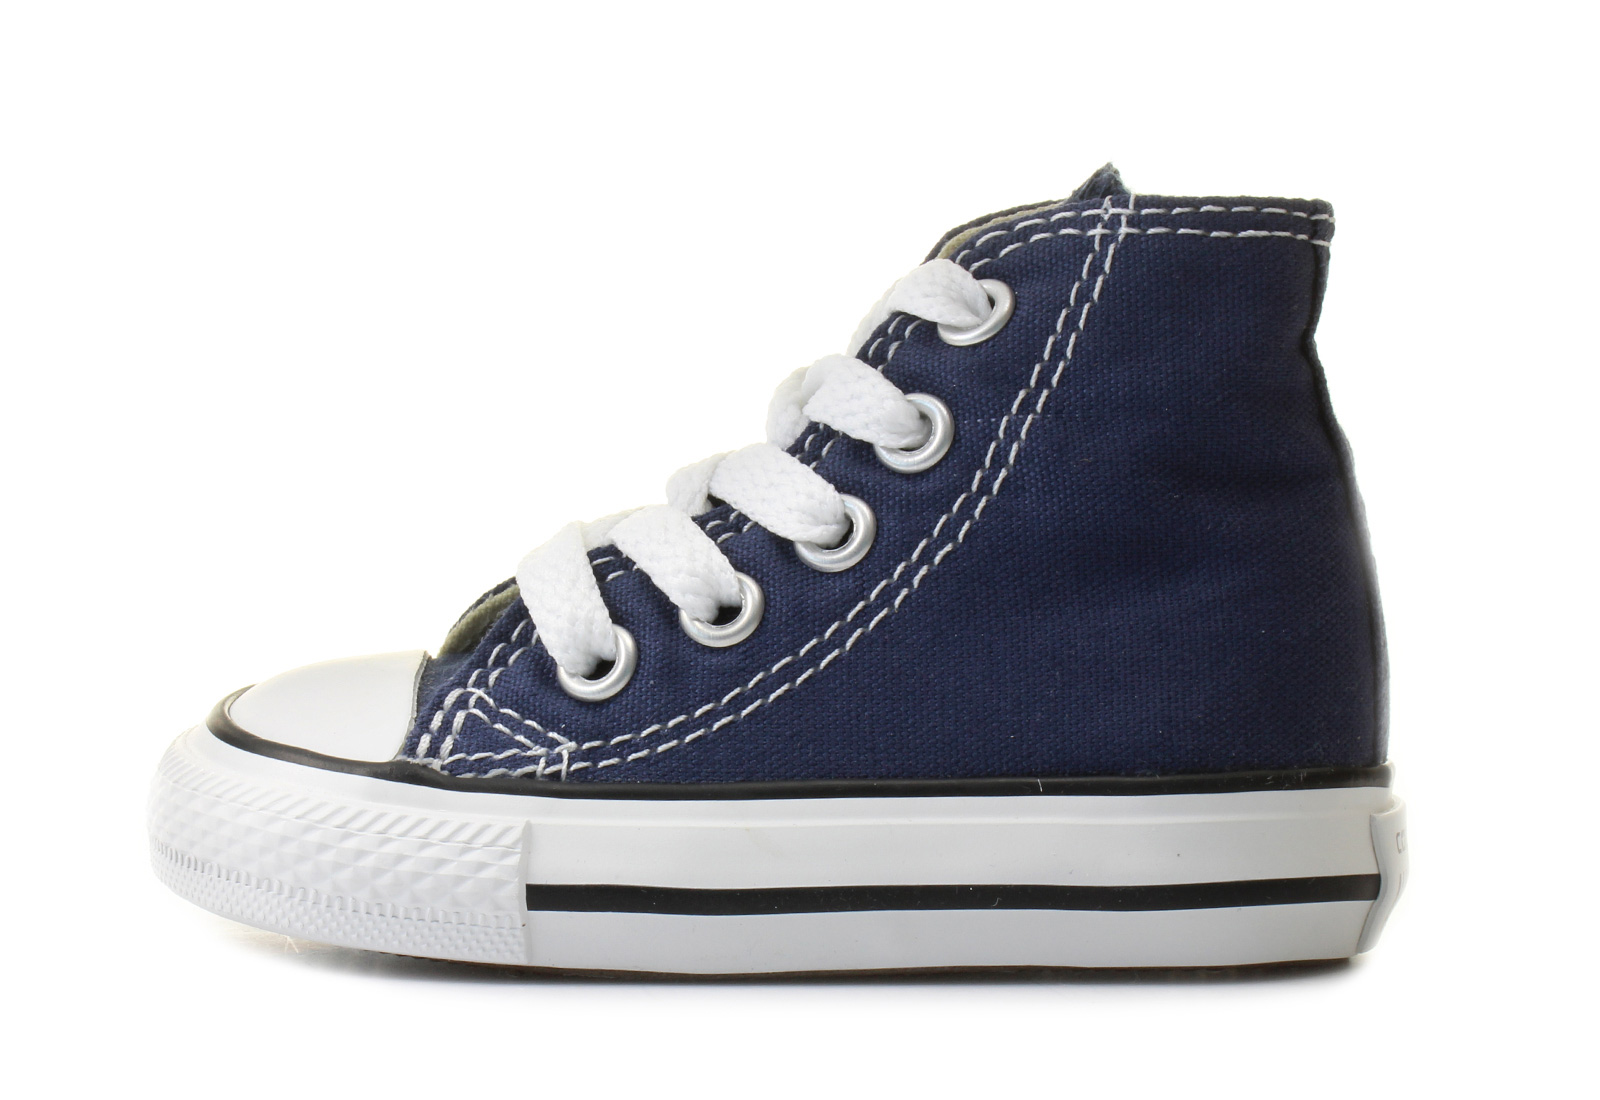 844733b0ee2836 Converse Sneakers - Chuck Taylor All Star Core Kids Hi - 7J233C ...